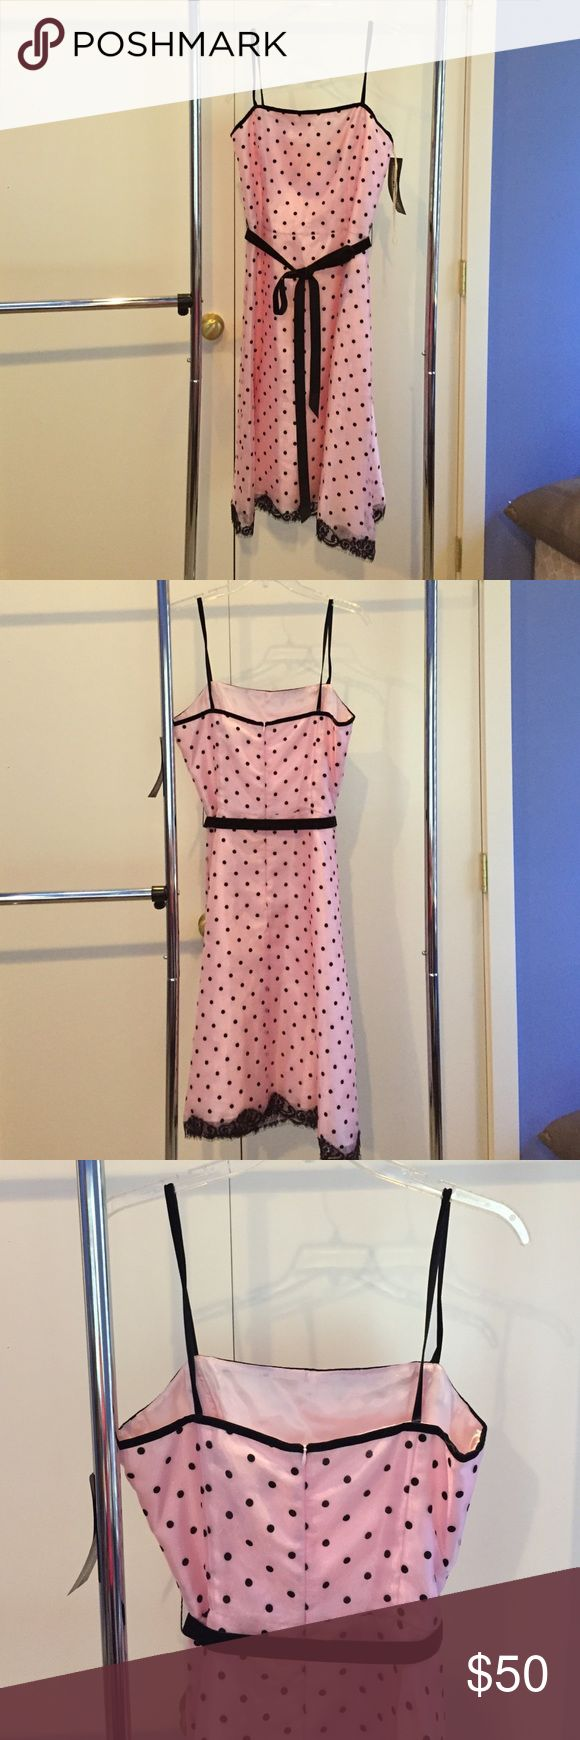 Pink with black polka dot formal dress size 12 Darling pink and black polka dot formal dress. Would be perfect for formal events. High neckline with felt trim, felt black polka dots and removable felt tie sash. Full skirt with tulle on the bottom Jessica Howard Dresses Prom